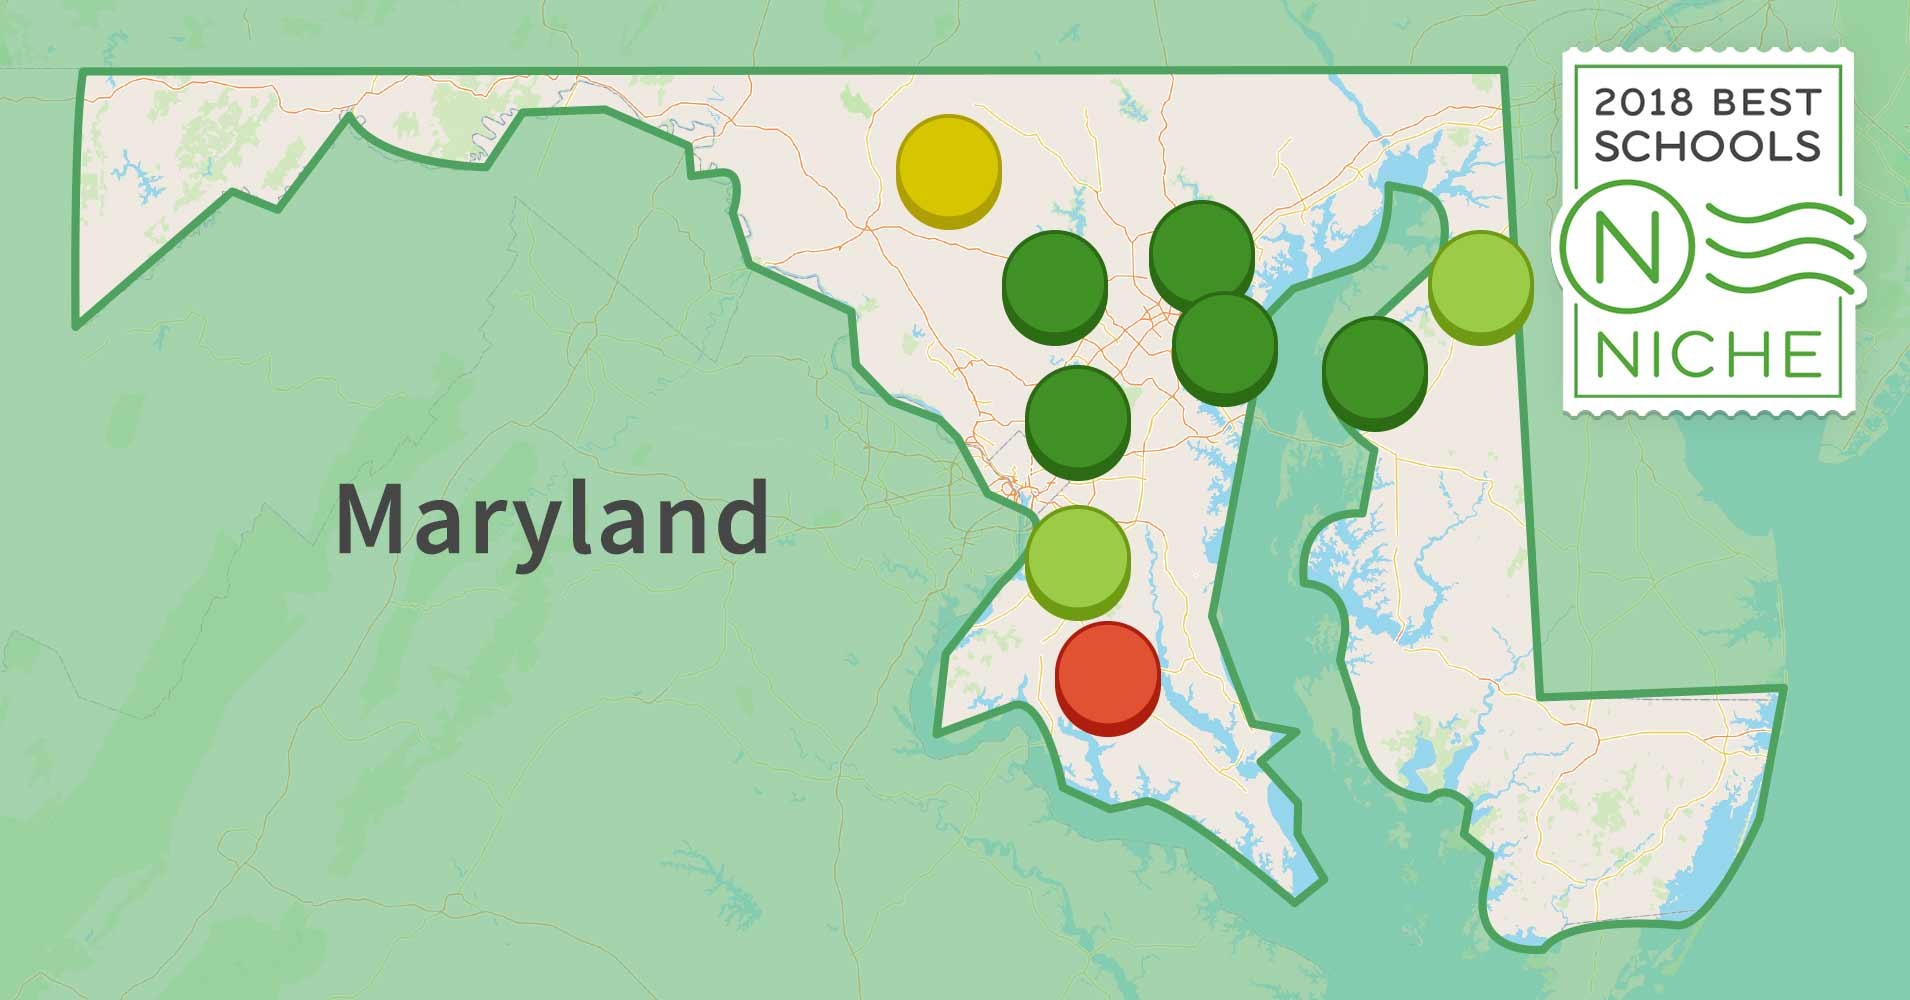 Best School Districts In Maryland Niche - Marriland map